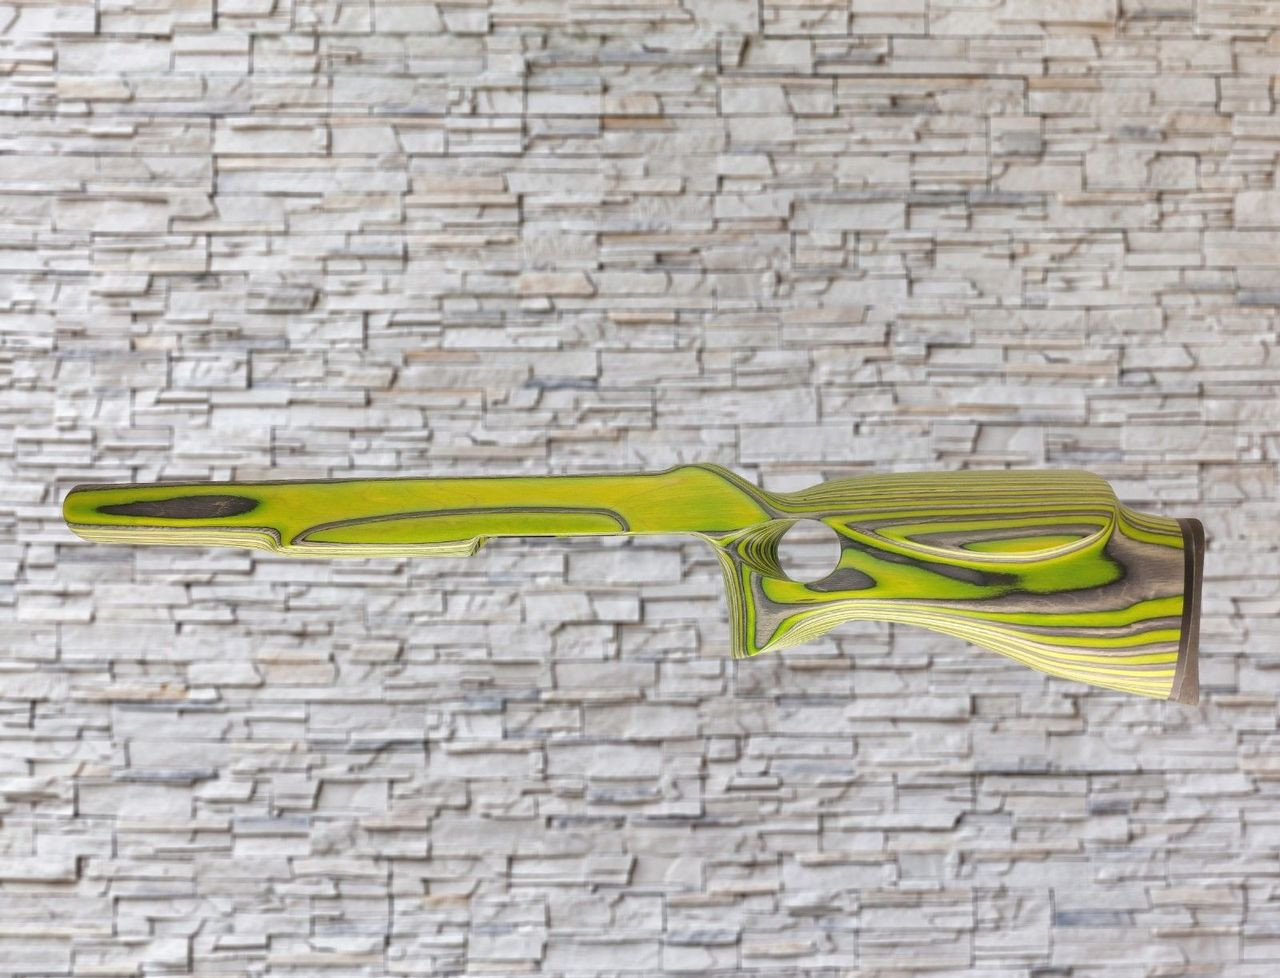 Boyds Blaster Zombie Bull Barrel Wood Stock for Ruger 10/22, T/CR22